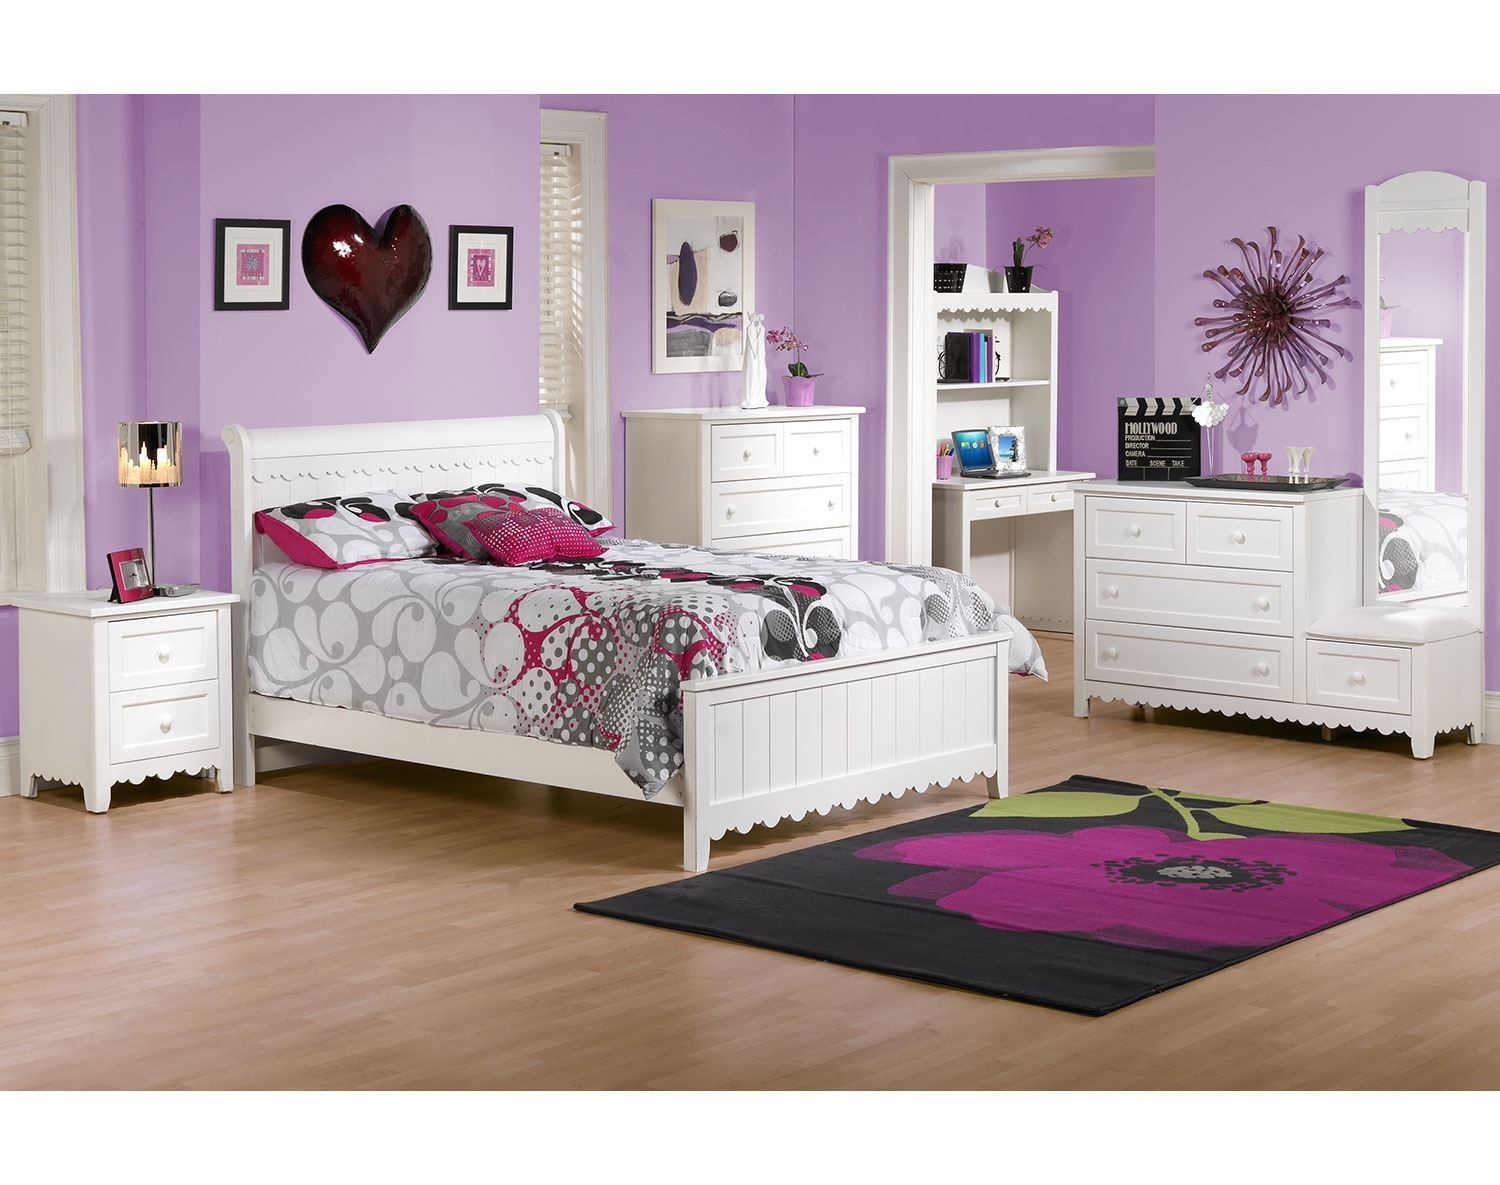 Leons Bedroom Furniture Sweetdreams Twin Bed White Leons